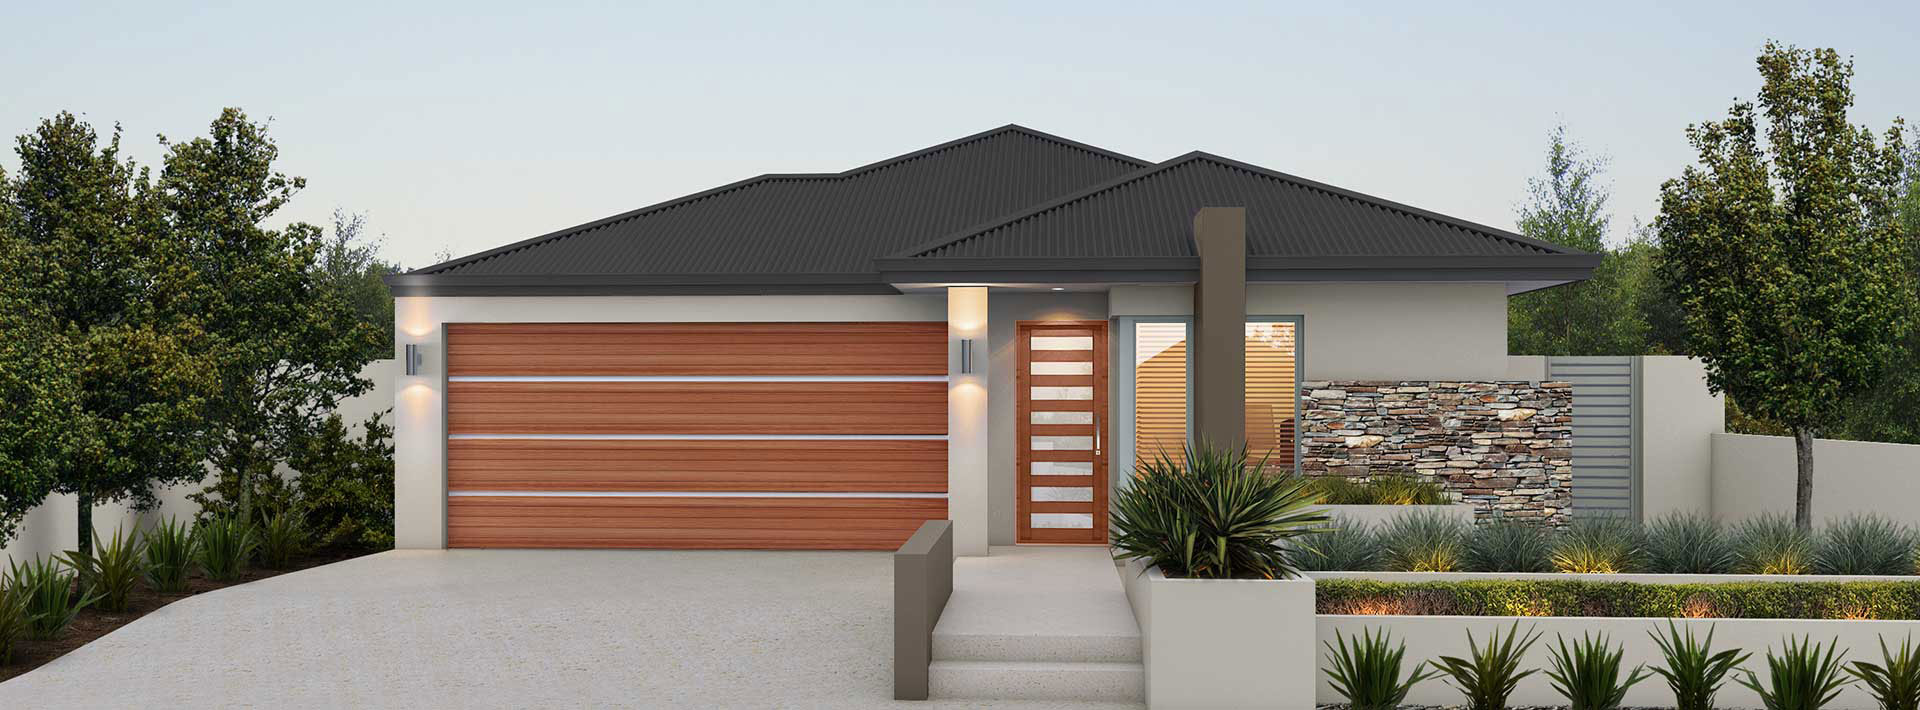 """House frontage of single storey home design """"My Milan"""""""